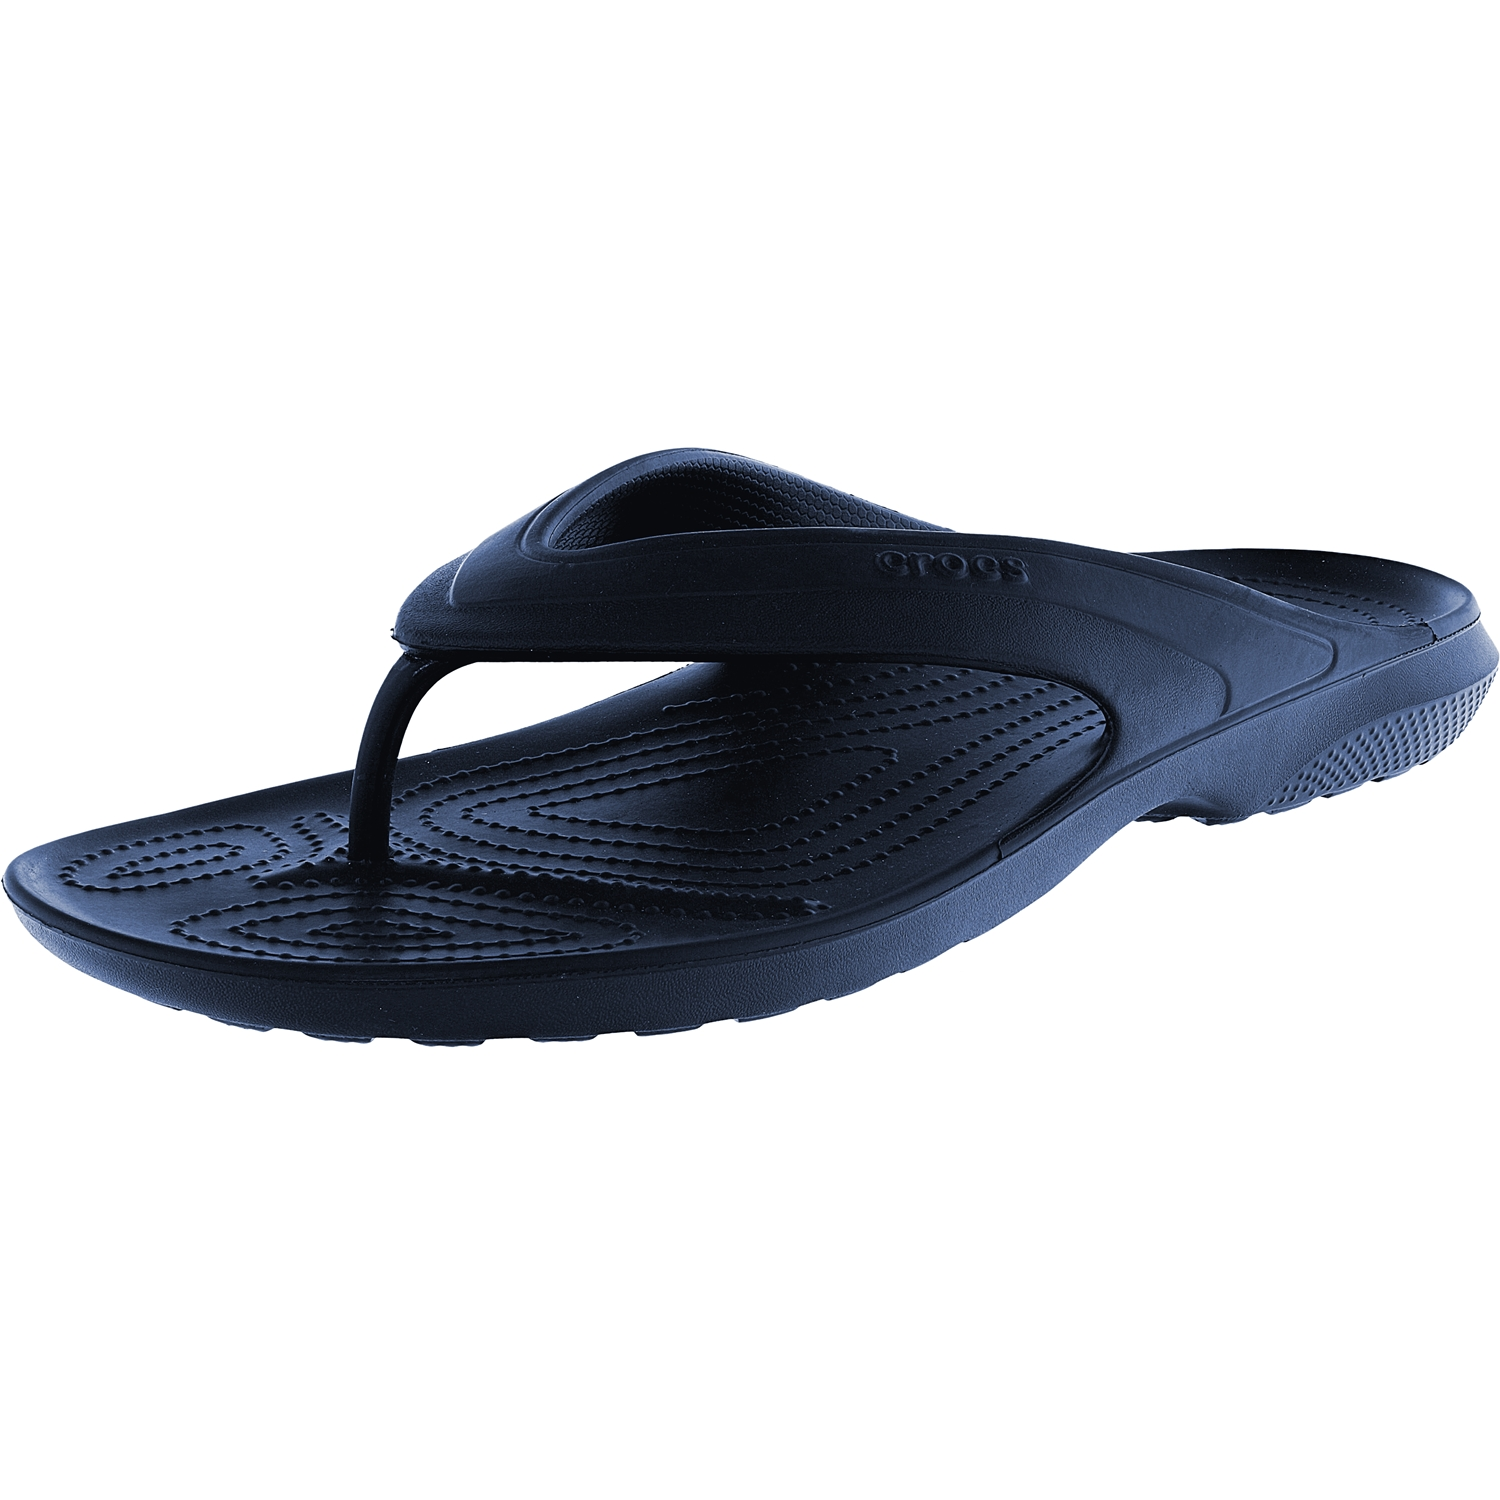 Crocs Classic Flip Navy Low Top Rubber Sandal 14M   12M by Crocs